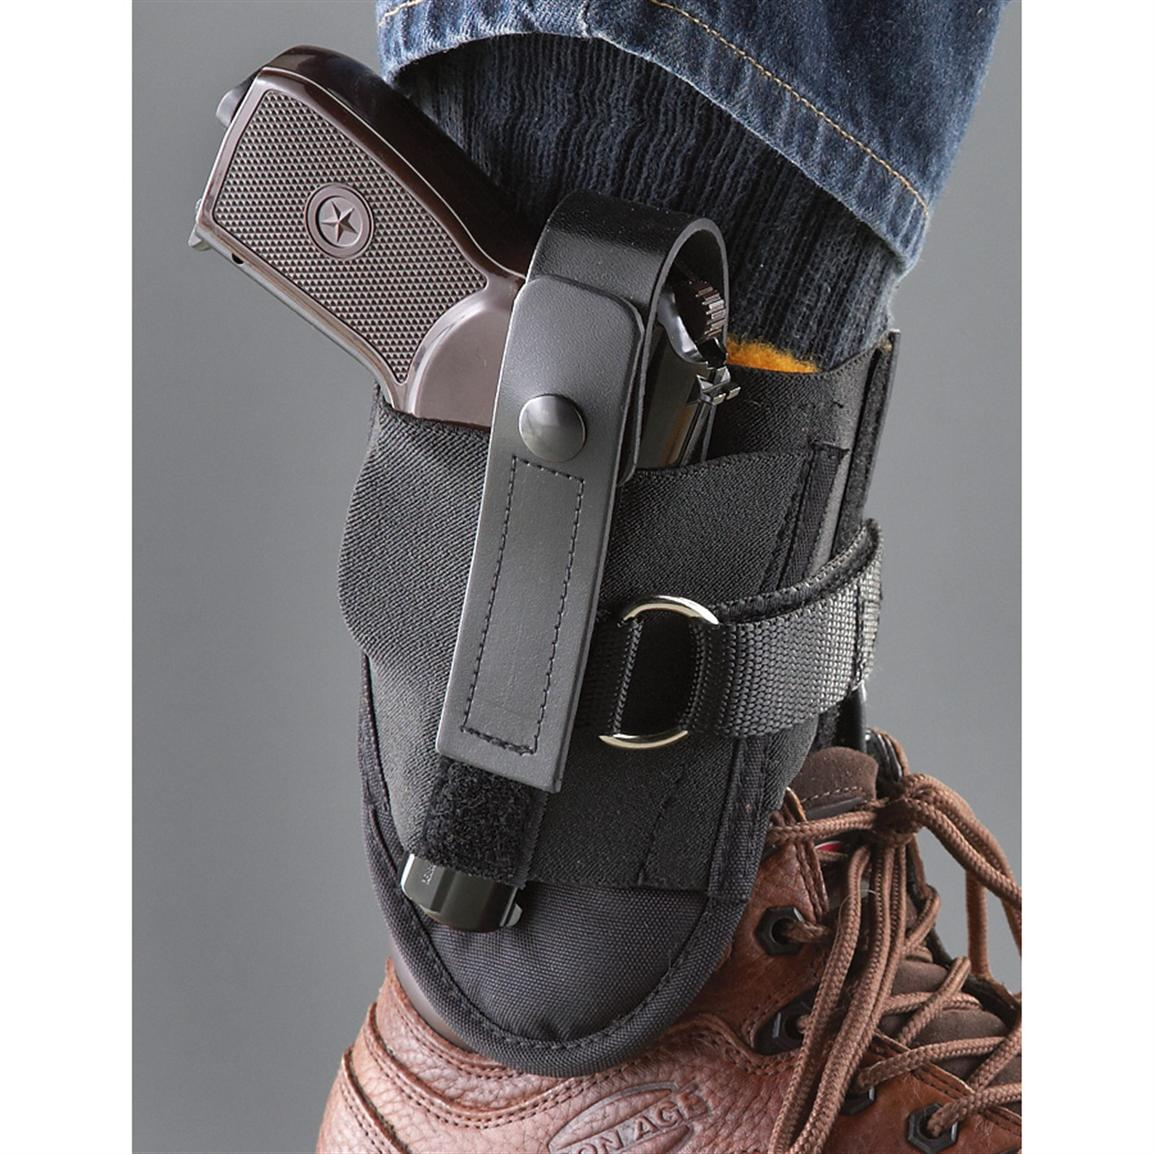 Wolverine Ankle Holster with D-ring Locking System